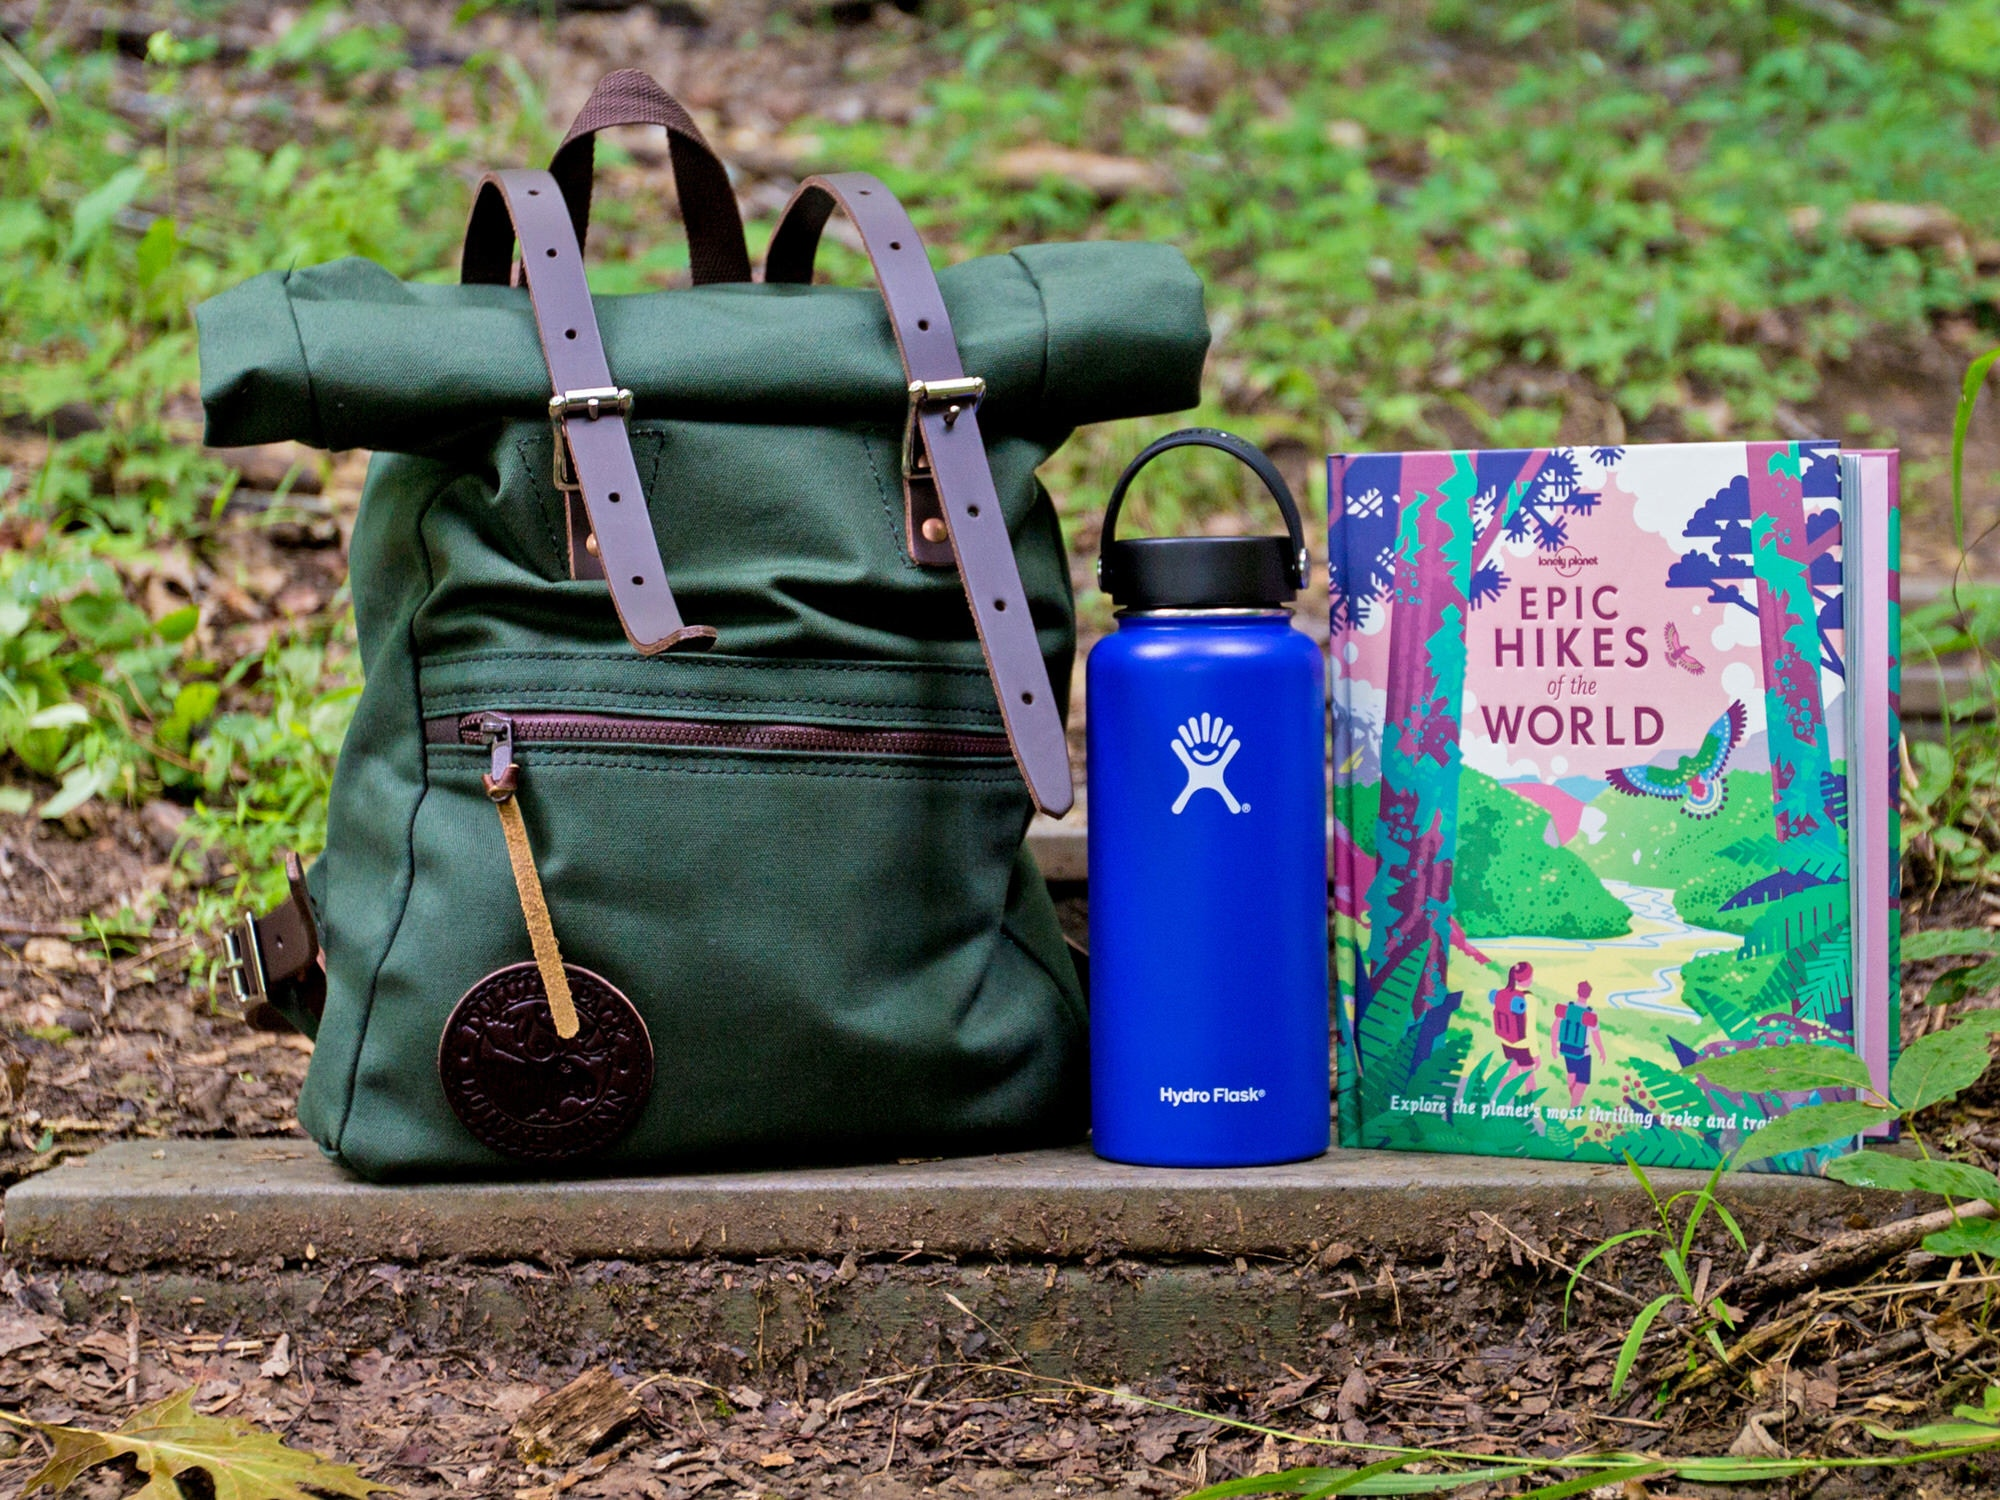 First prize: a Duluth Roll-Top Scout bag, Hydro Flask and Lonely Planet's Epic Hikes of the World